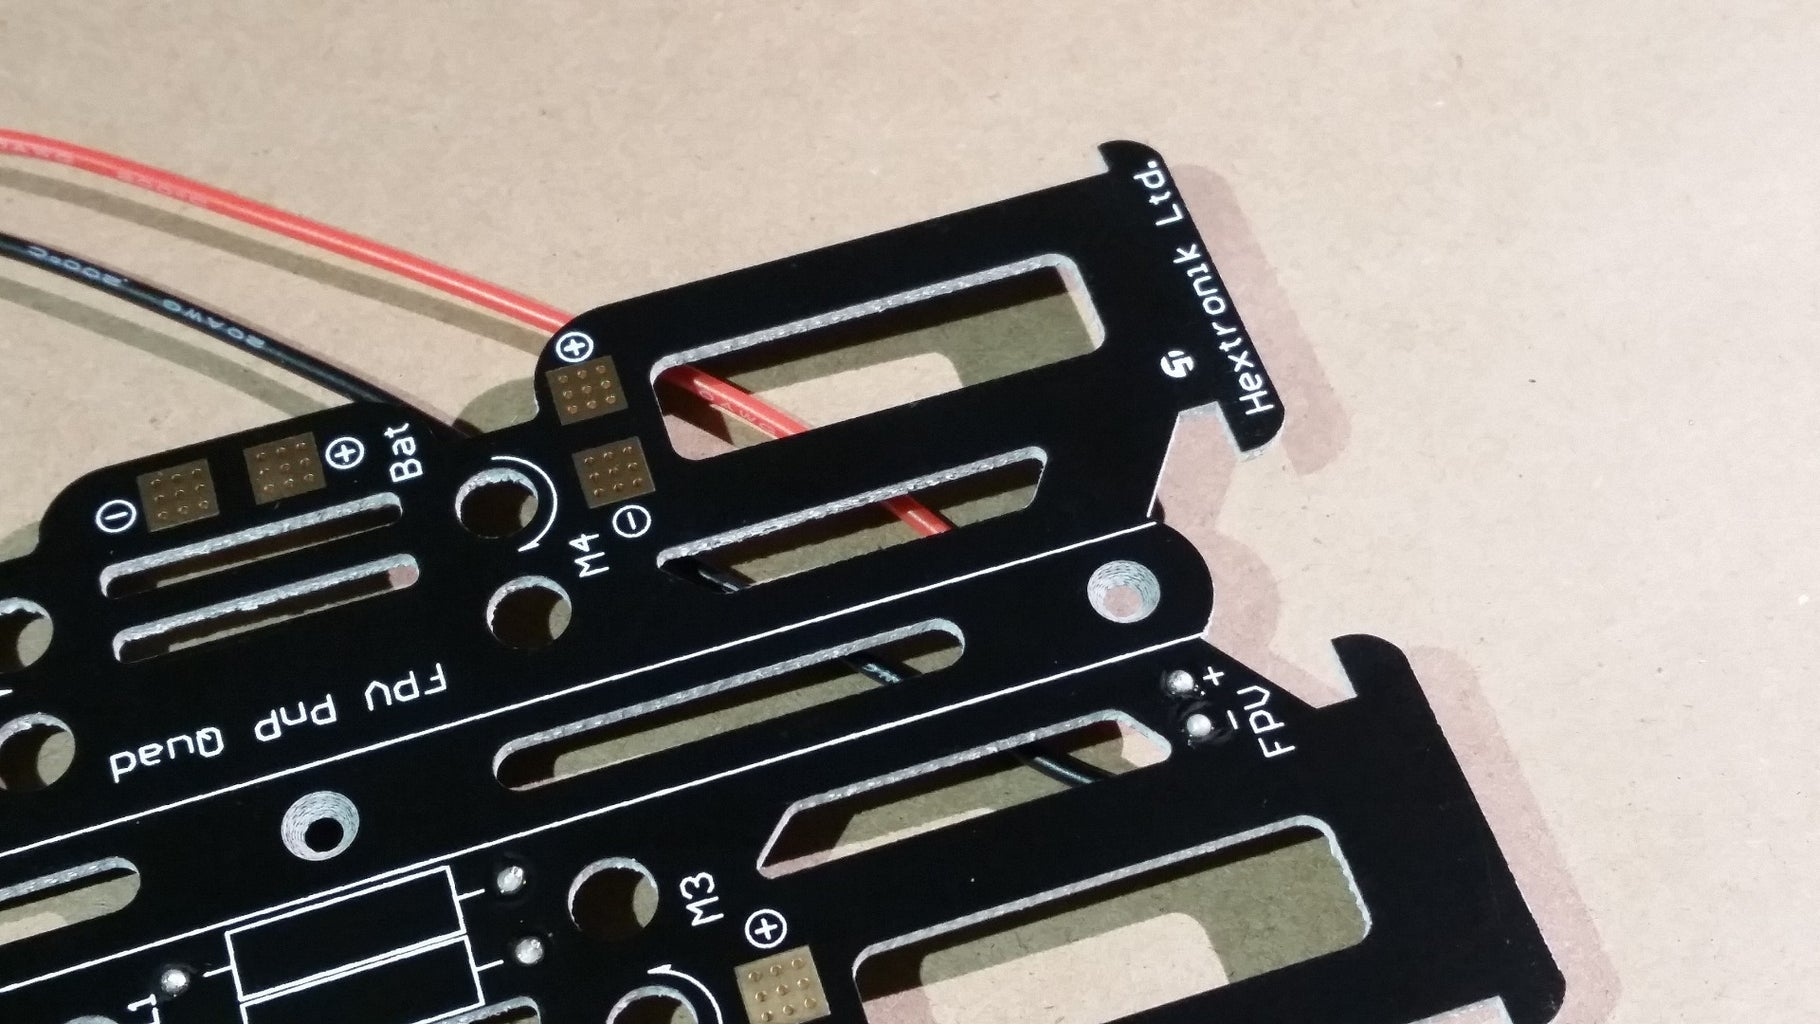 Solder FPV Power Cable to the Power Distribution Board